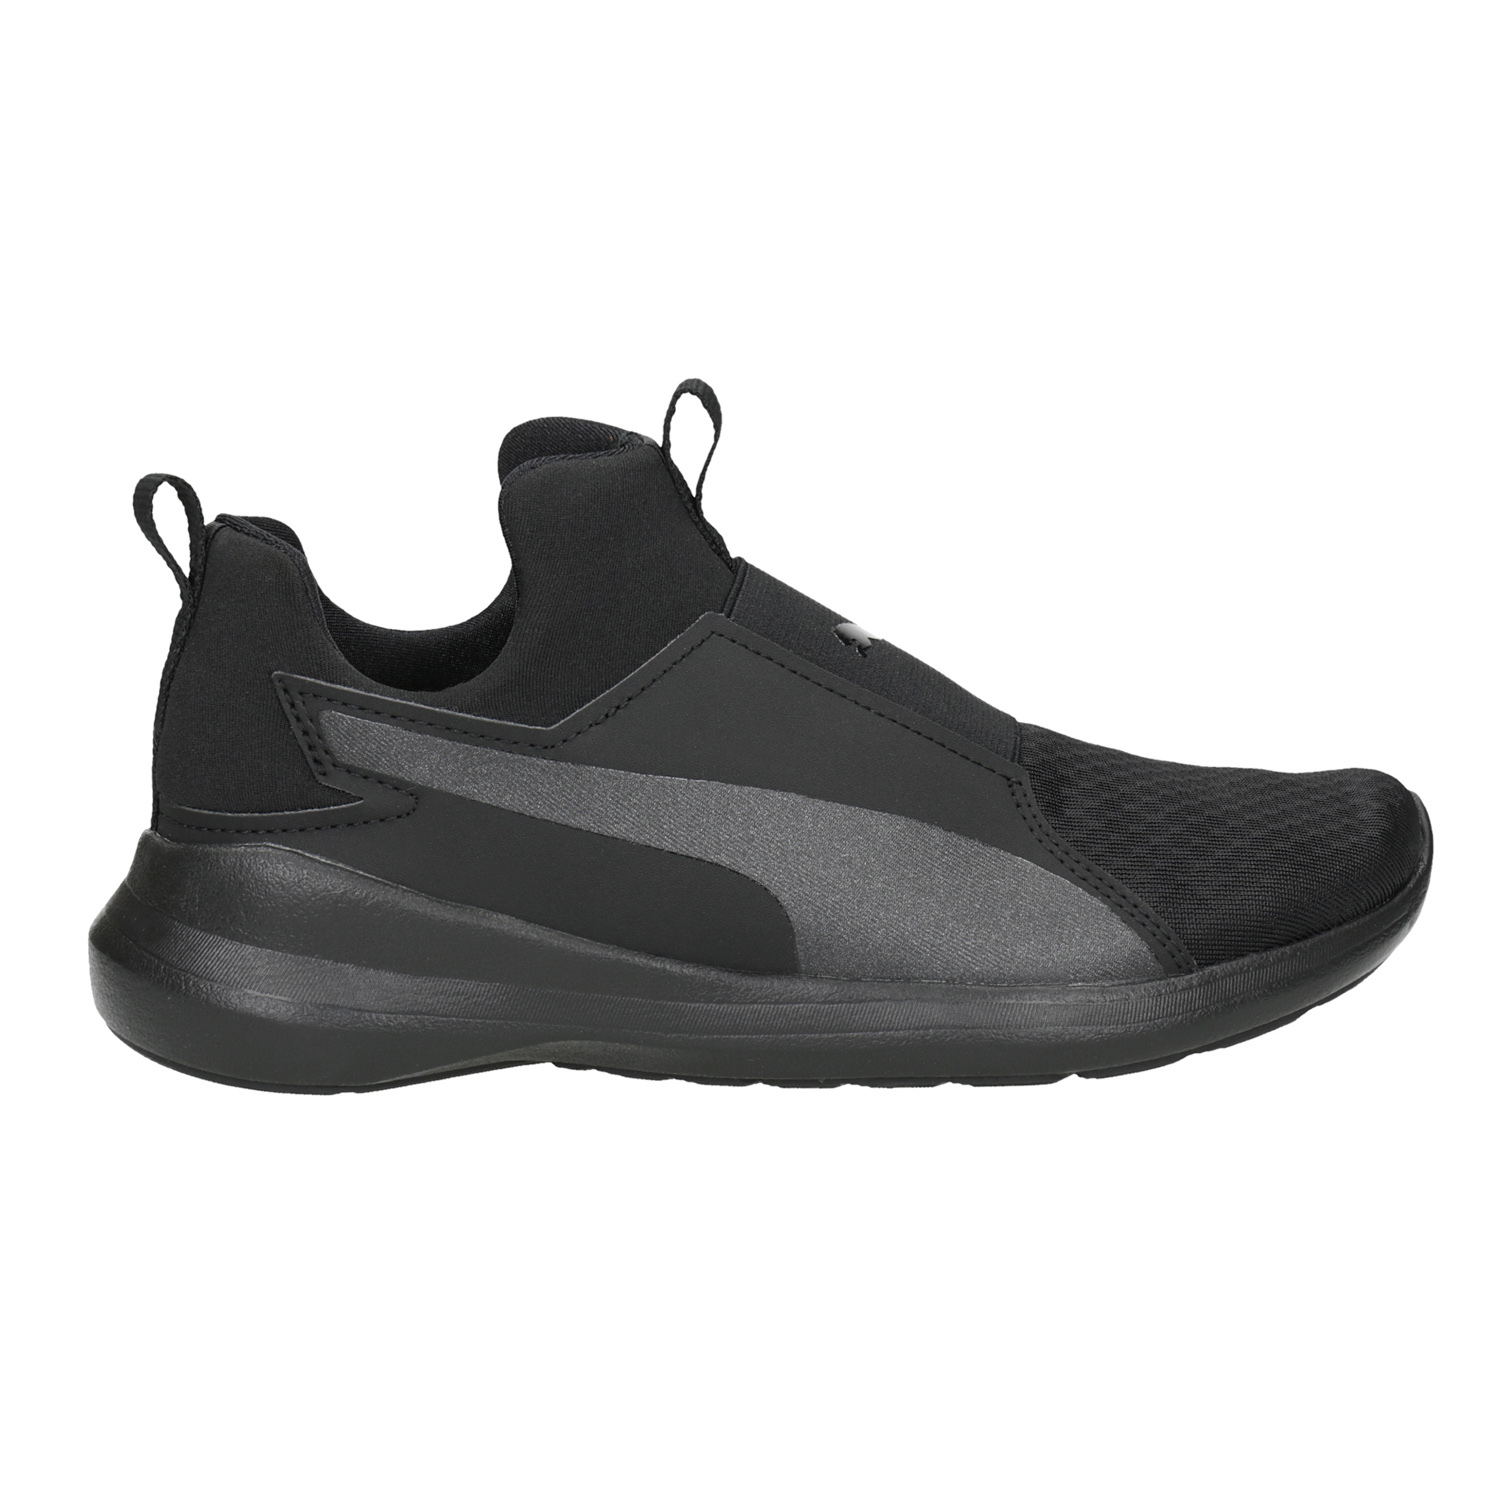 Puma Black Ladies  Laceless Sneakers - Slip - on  cf48fa53a08c